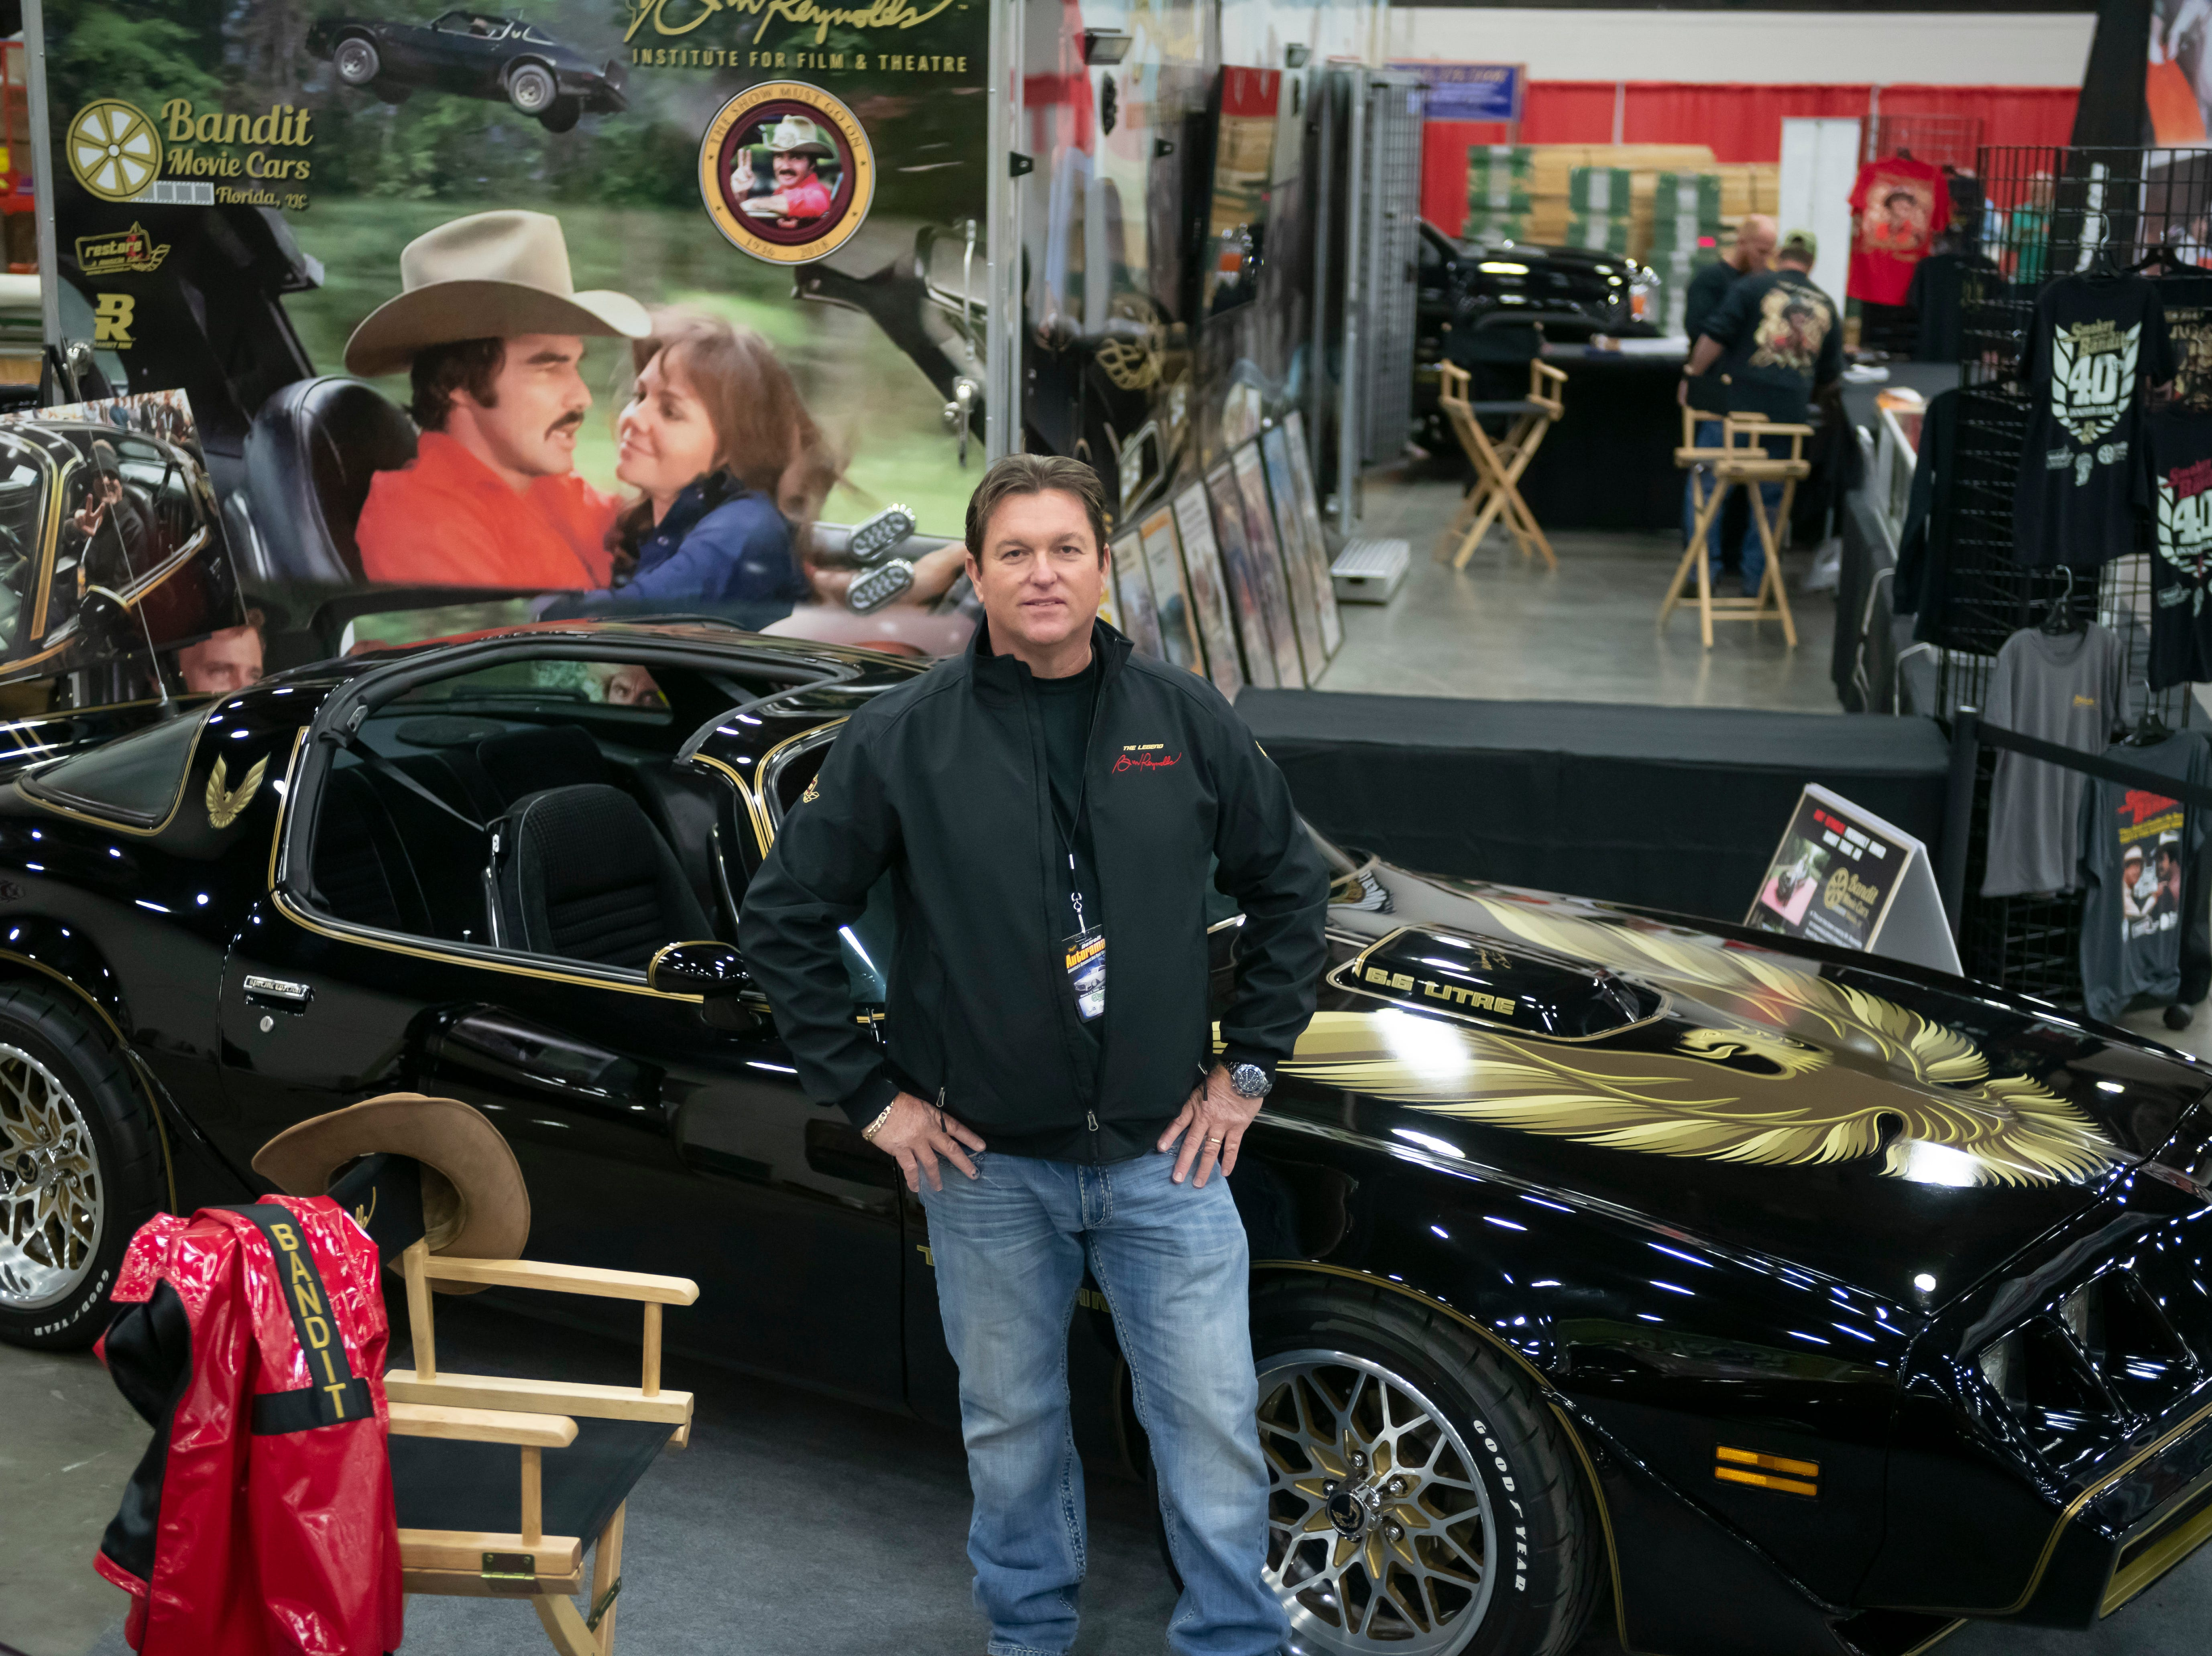 Gene Kennedy, manager of Bandit Movie Cars, stands next to a 1979 Pontiac Trans Am that was the personal vehicle of actor Burt Reynolds.